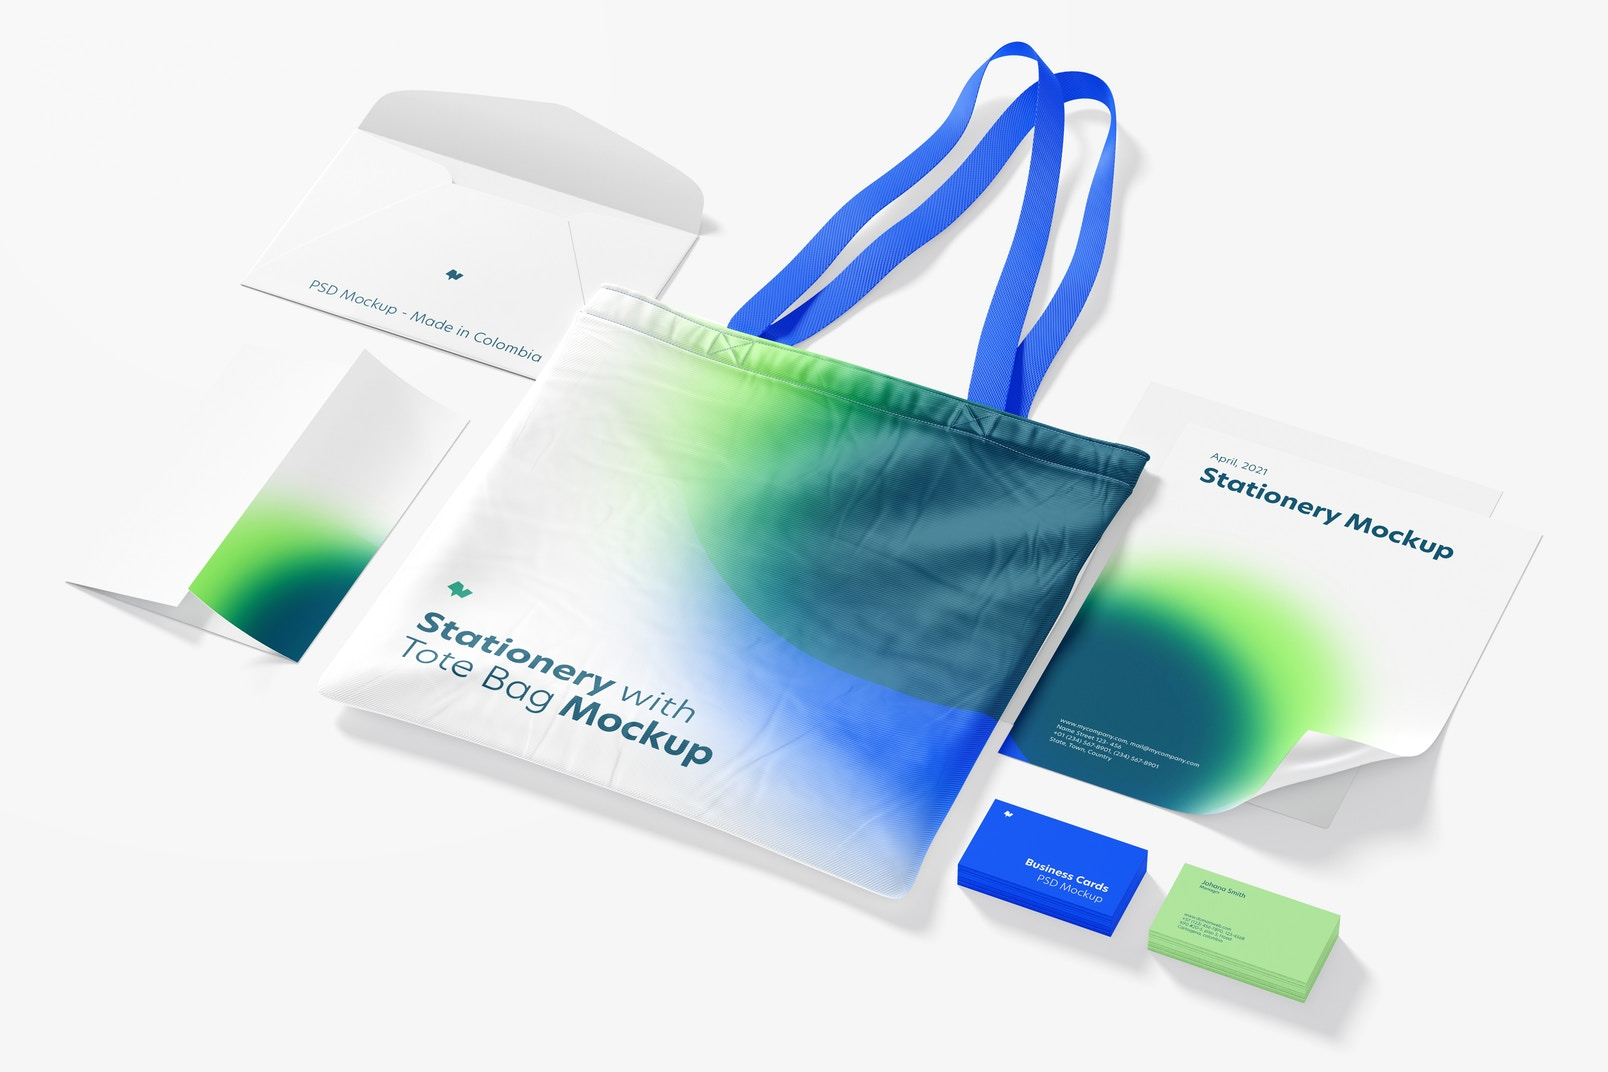 Stationery with Tote Bag Mockup, Perspective View